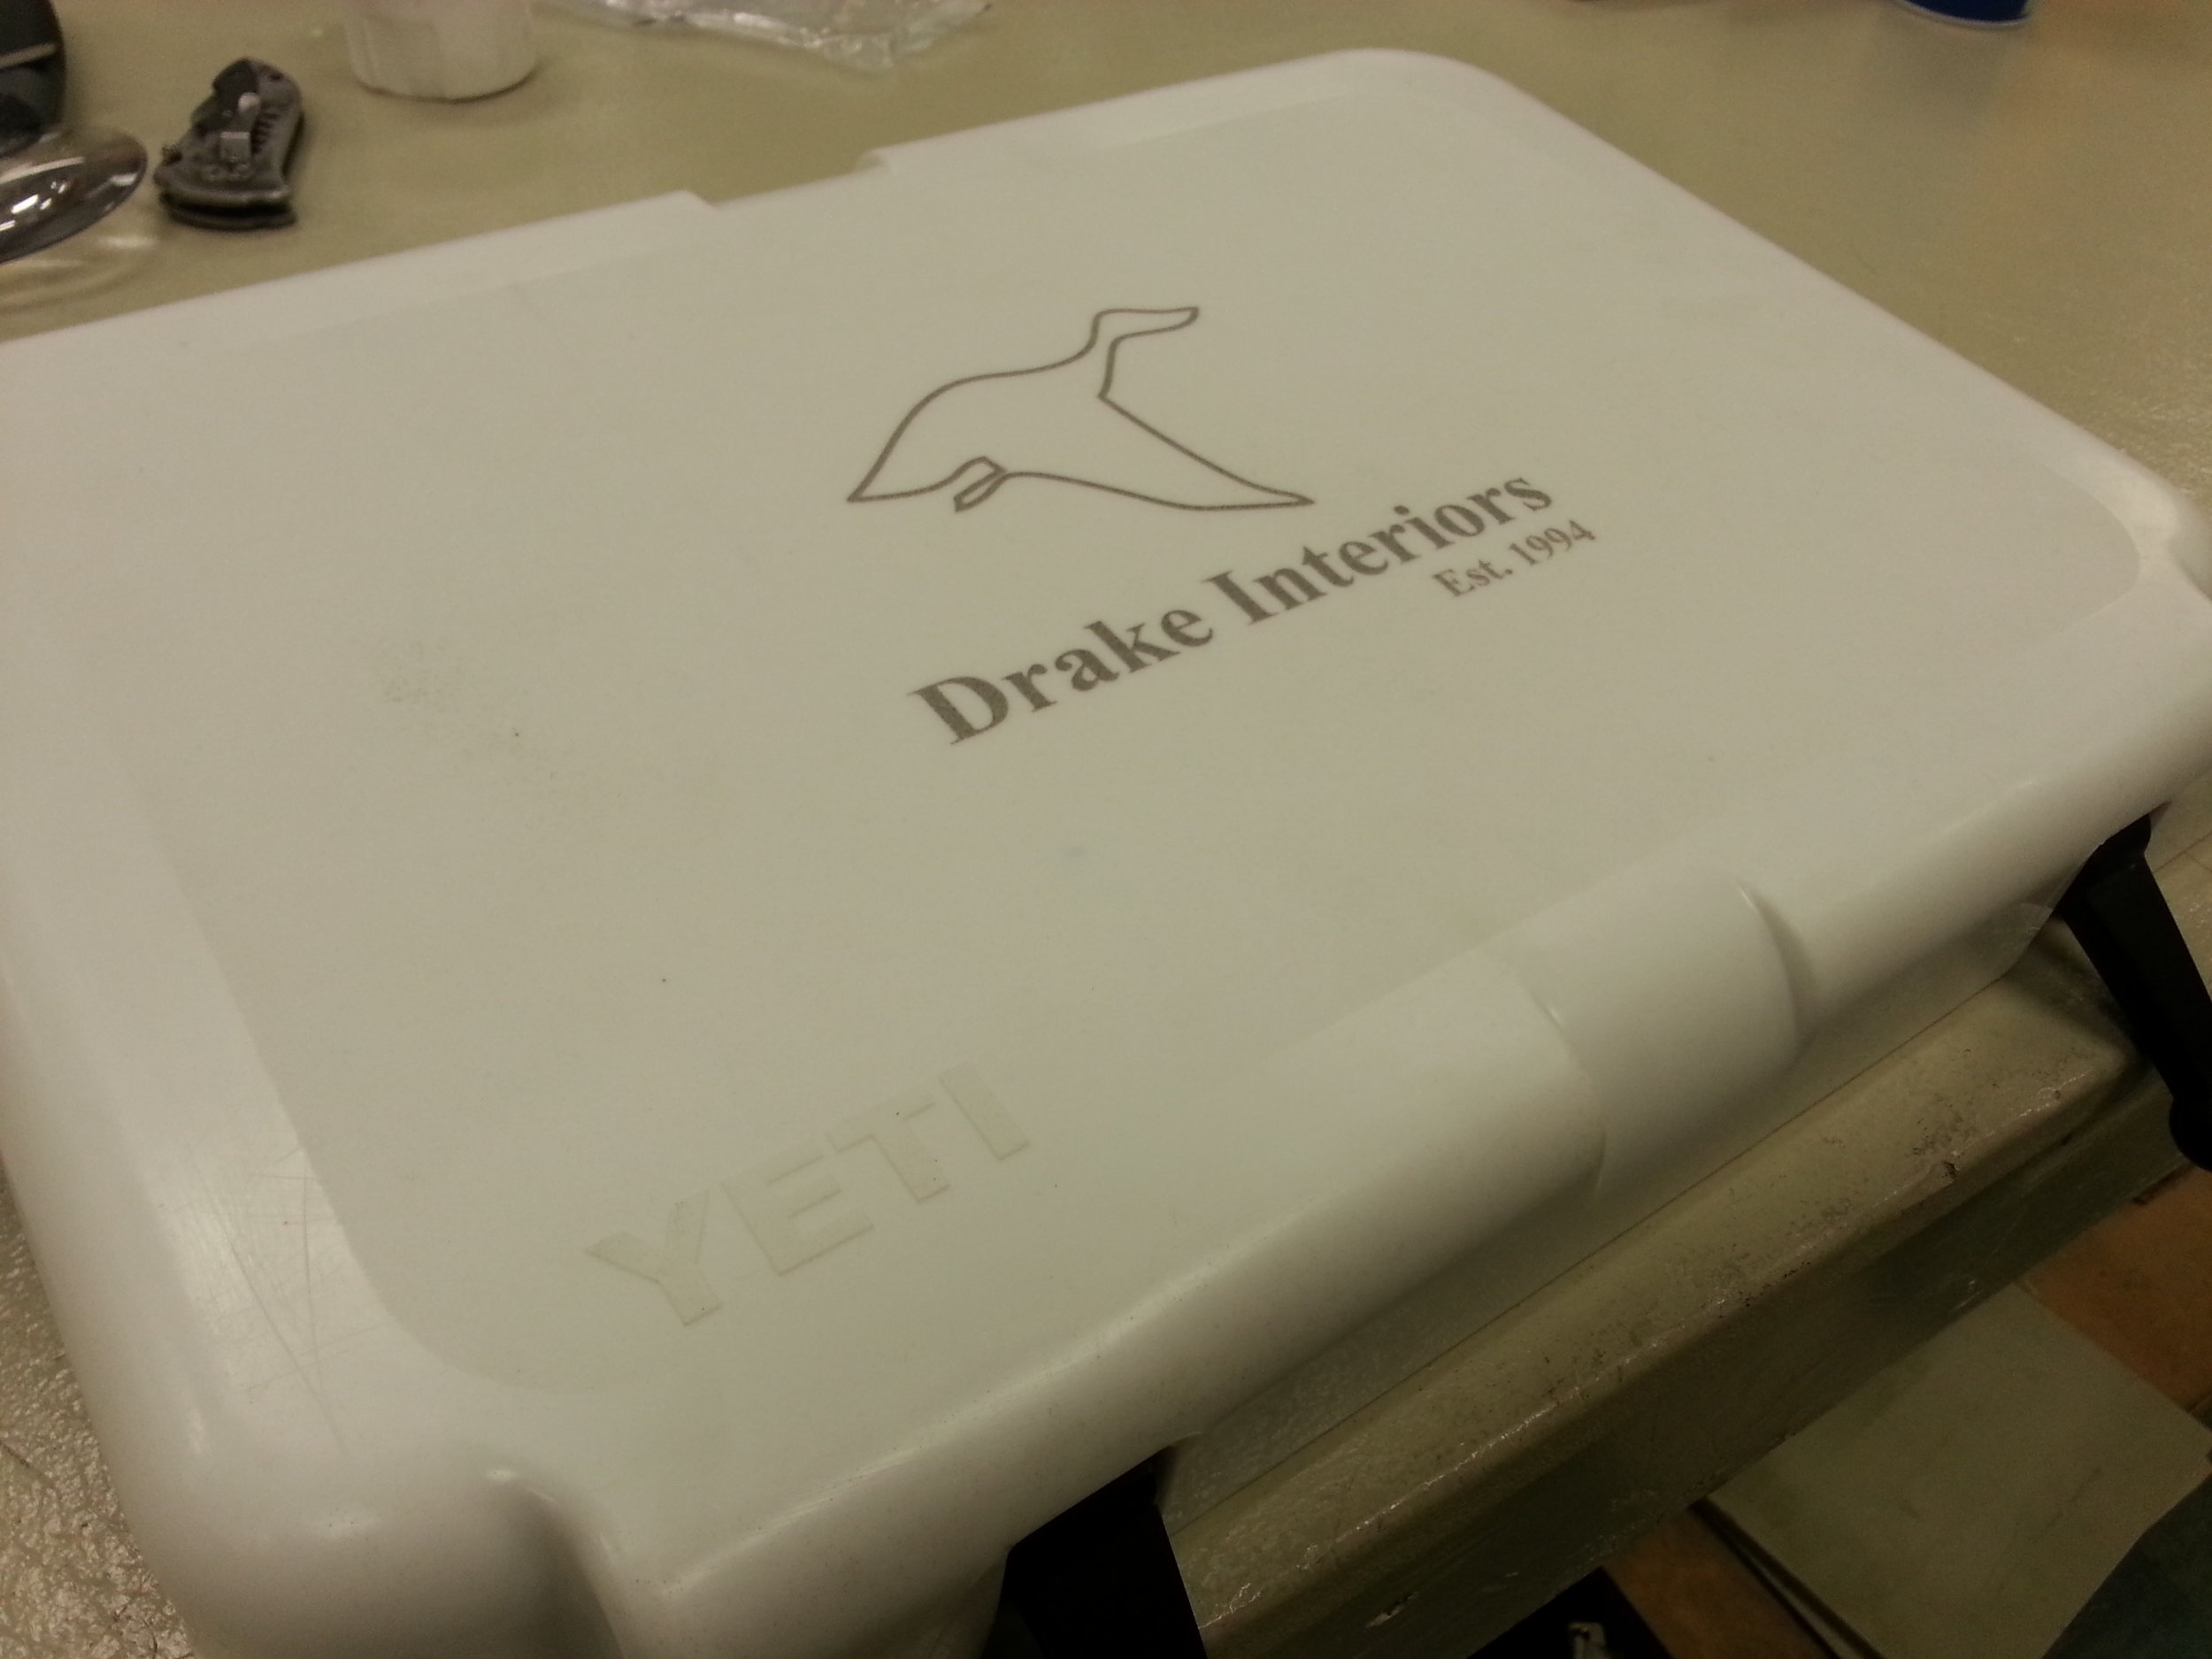 Copy of Engraved Yeti Cooler - custom Yeti Cooler - Personalized Yeti Cooler - Engraved Cooler - Personalized Cooler - Engrave It Houston